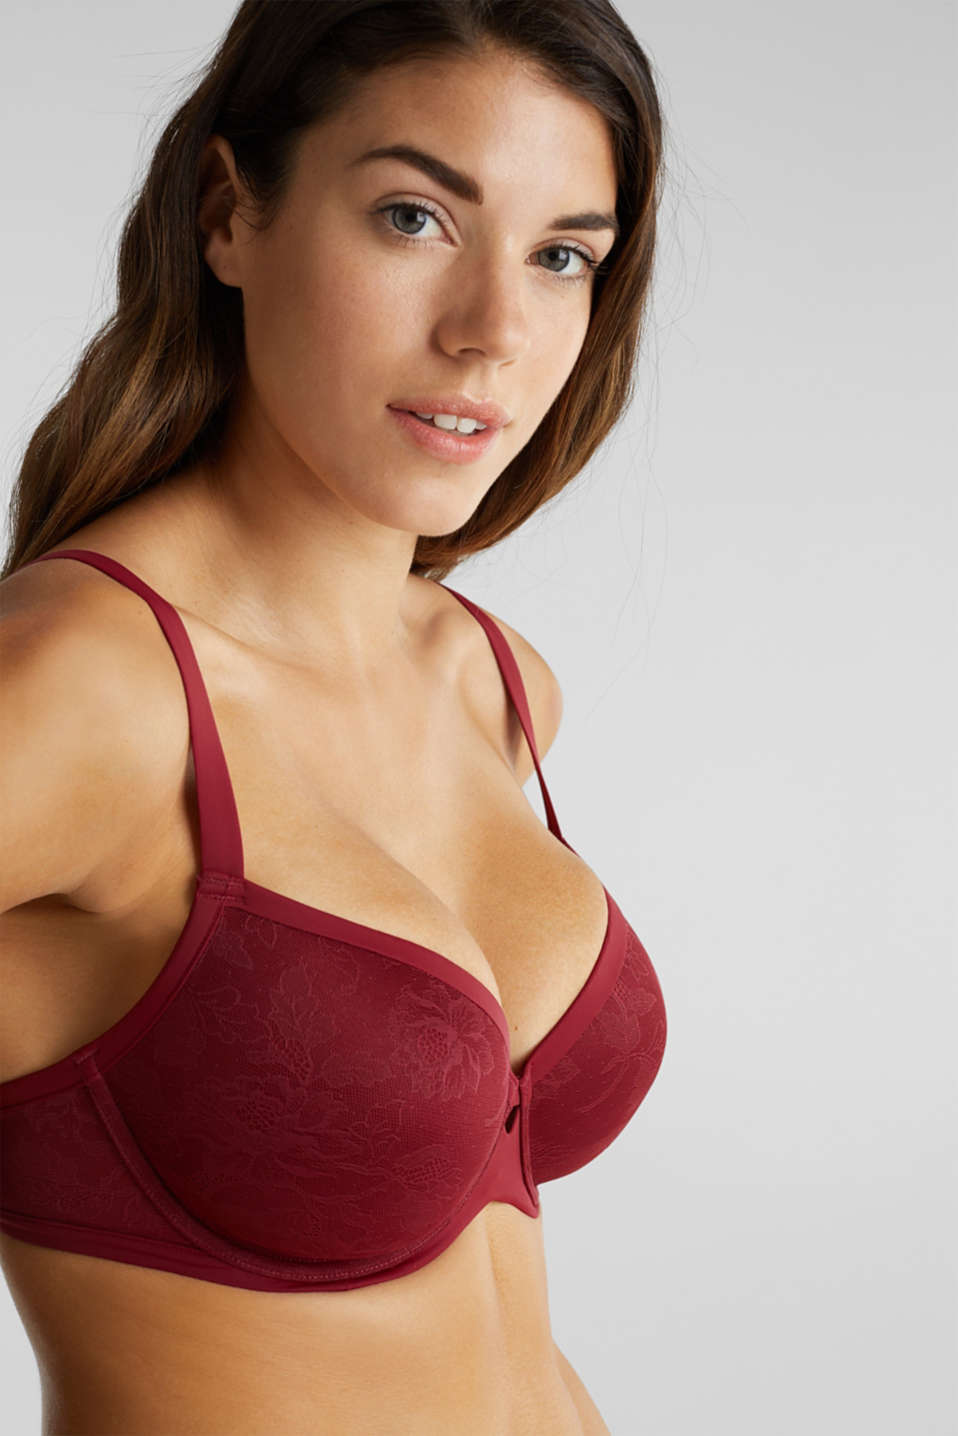 Padded lace bra for larger cup sizes, BORDEAUX RED, detail image number 2